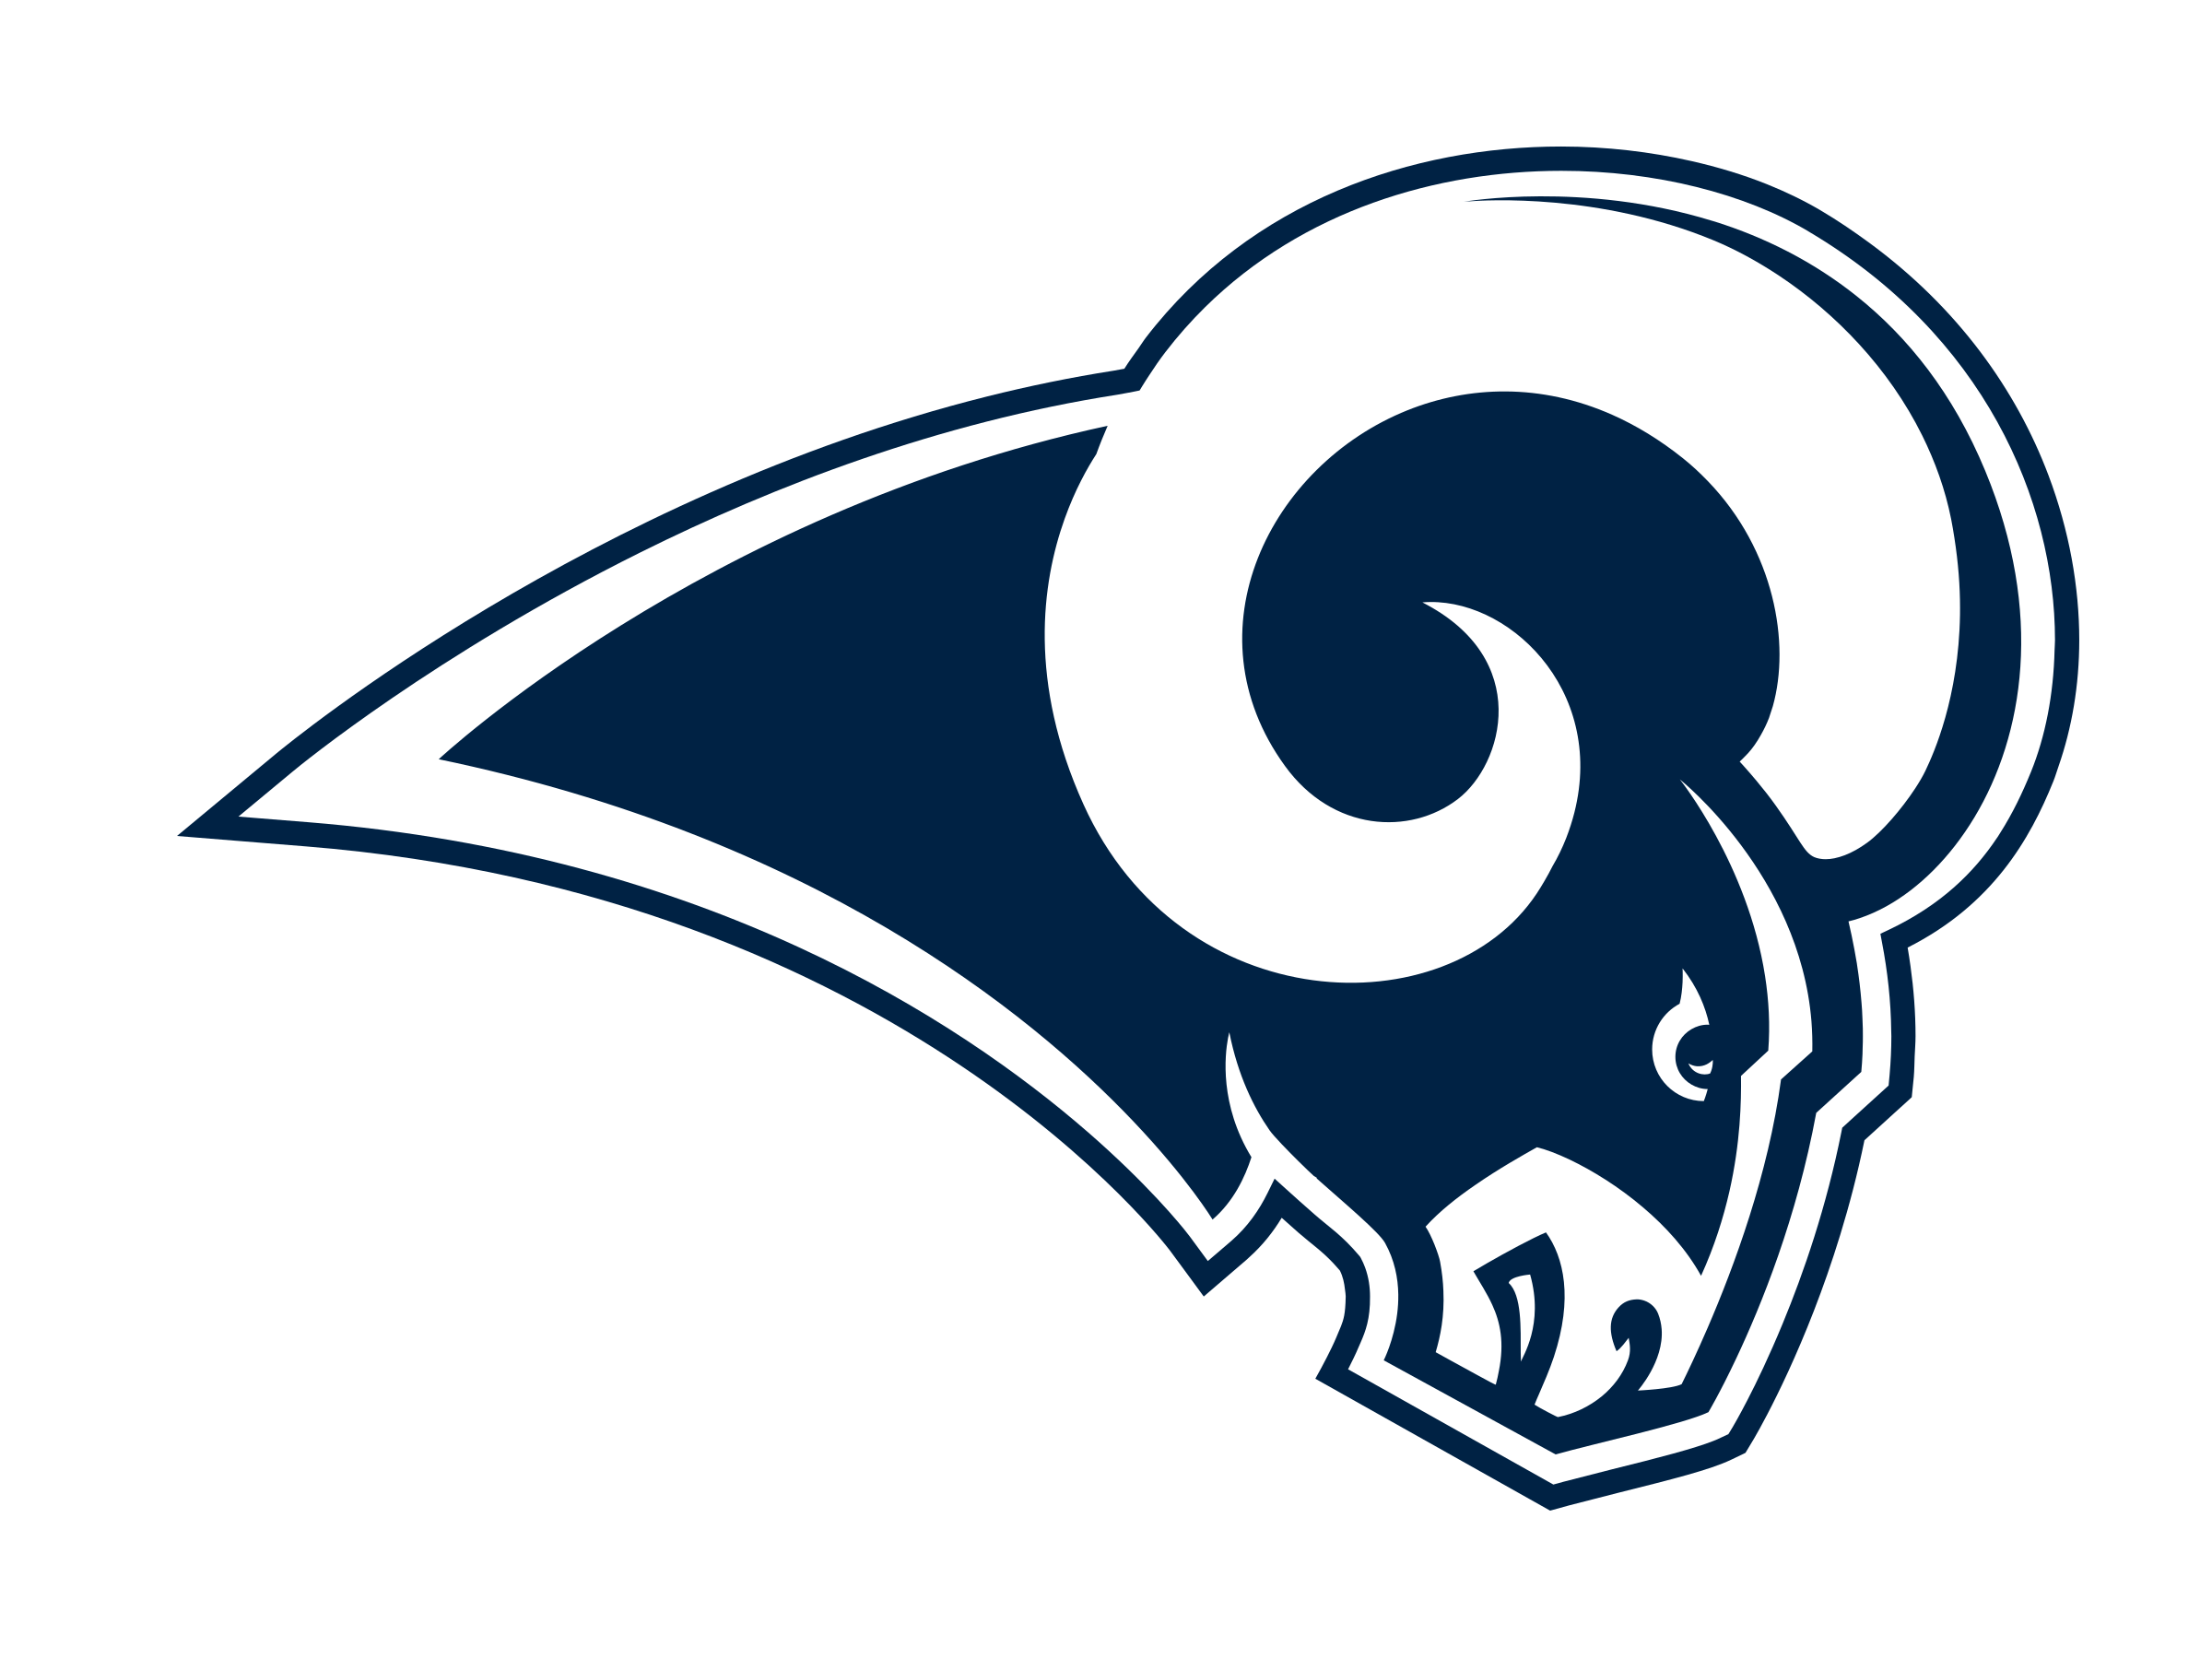 Rams football logo clipart image royalty free download Los Angeles Rams Logo PNG Transparent & SVG Vector - Freebie Supply image royalty free download